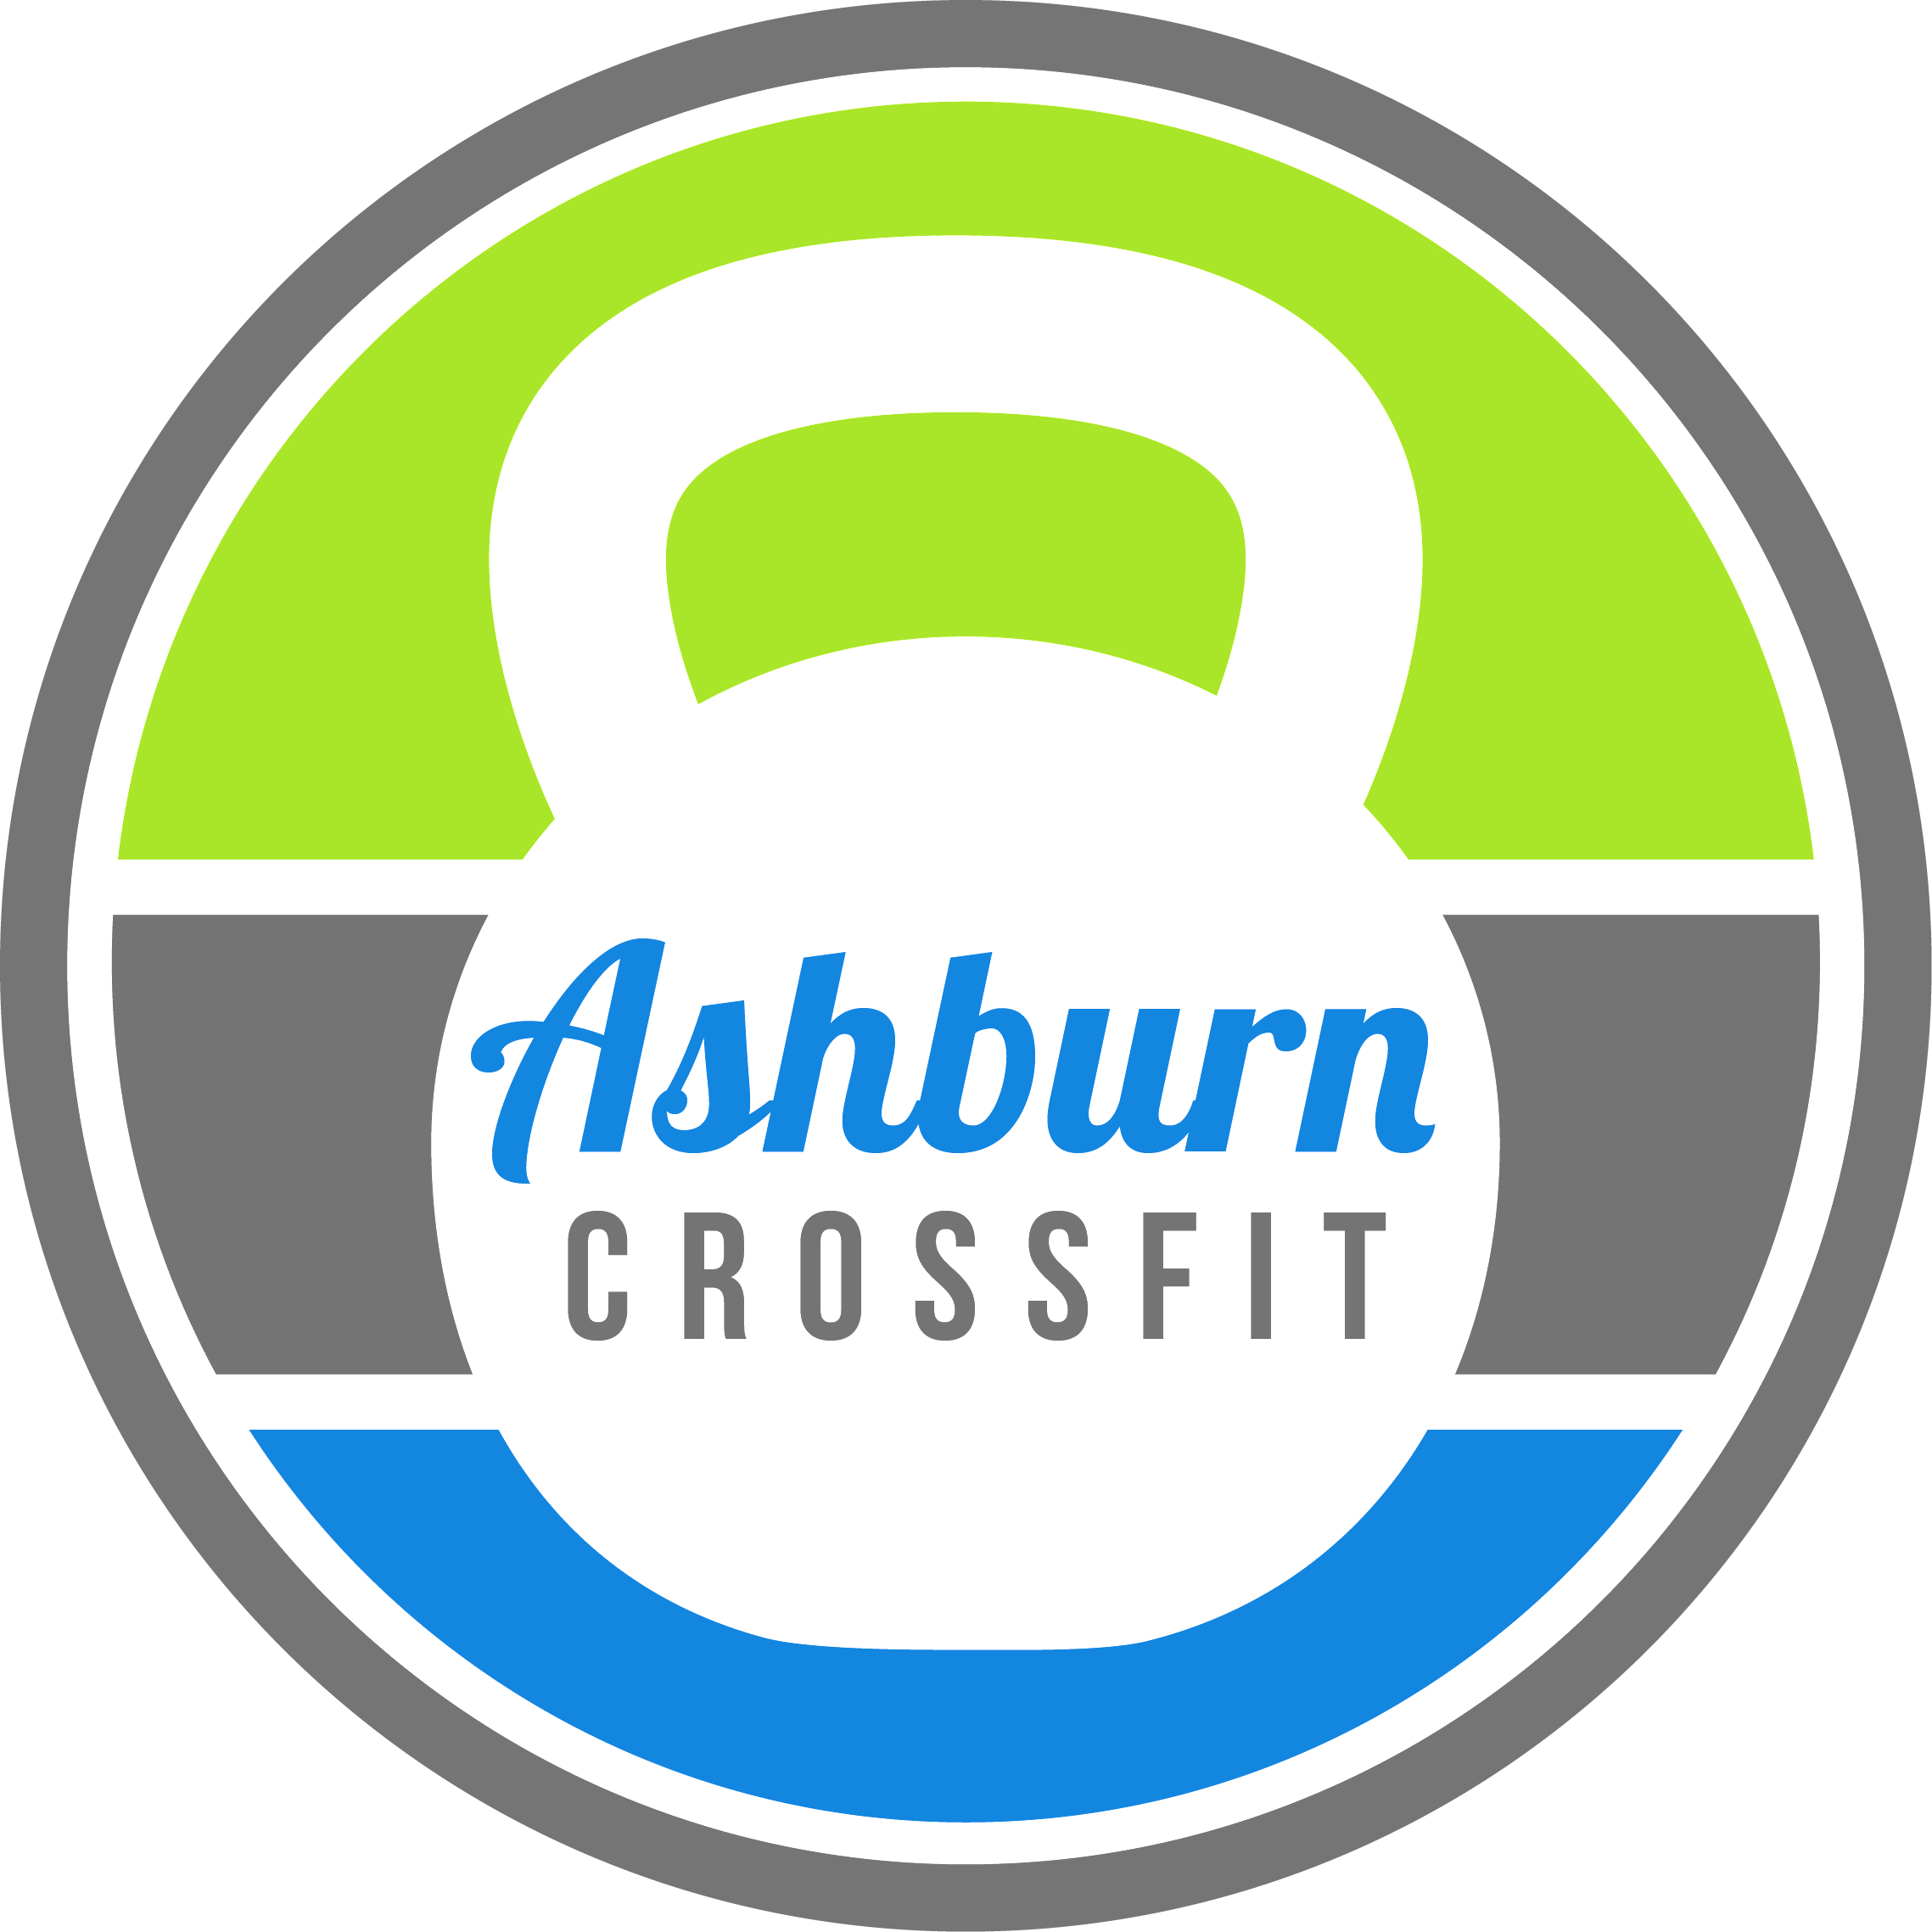 Ashburn CrossFit logo